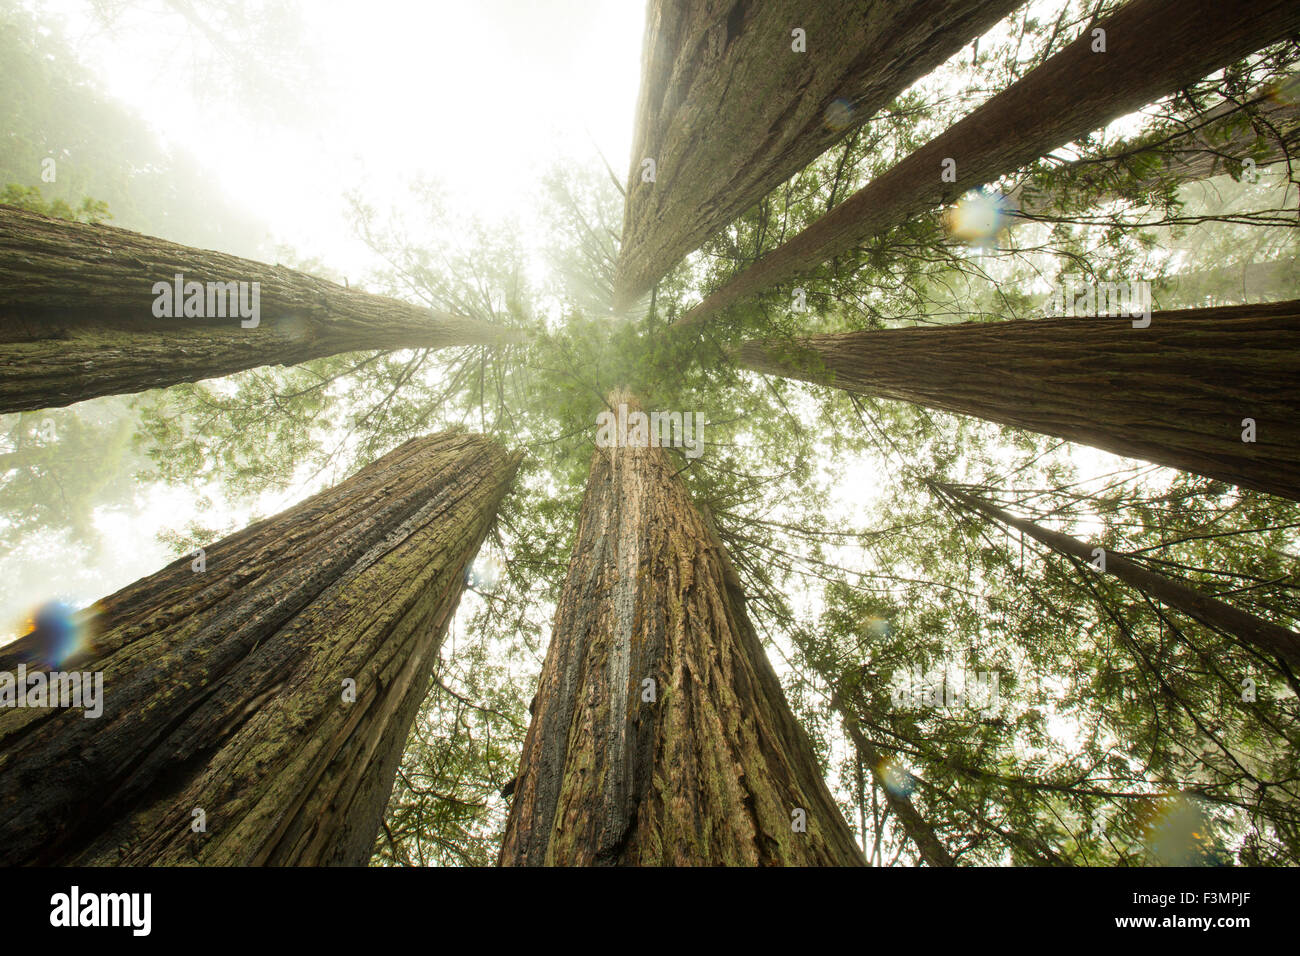 Coast and Redwoods, Northern California - Stock Image